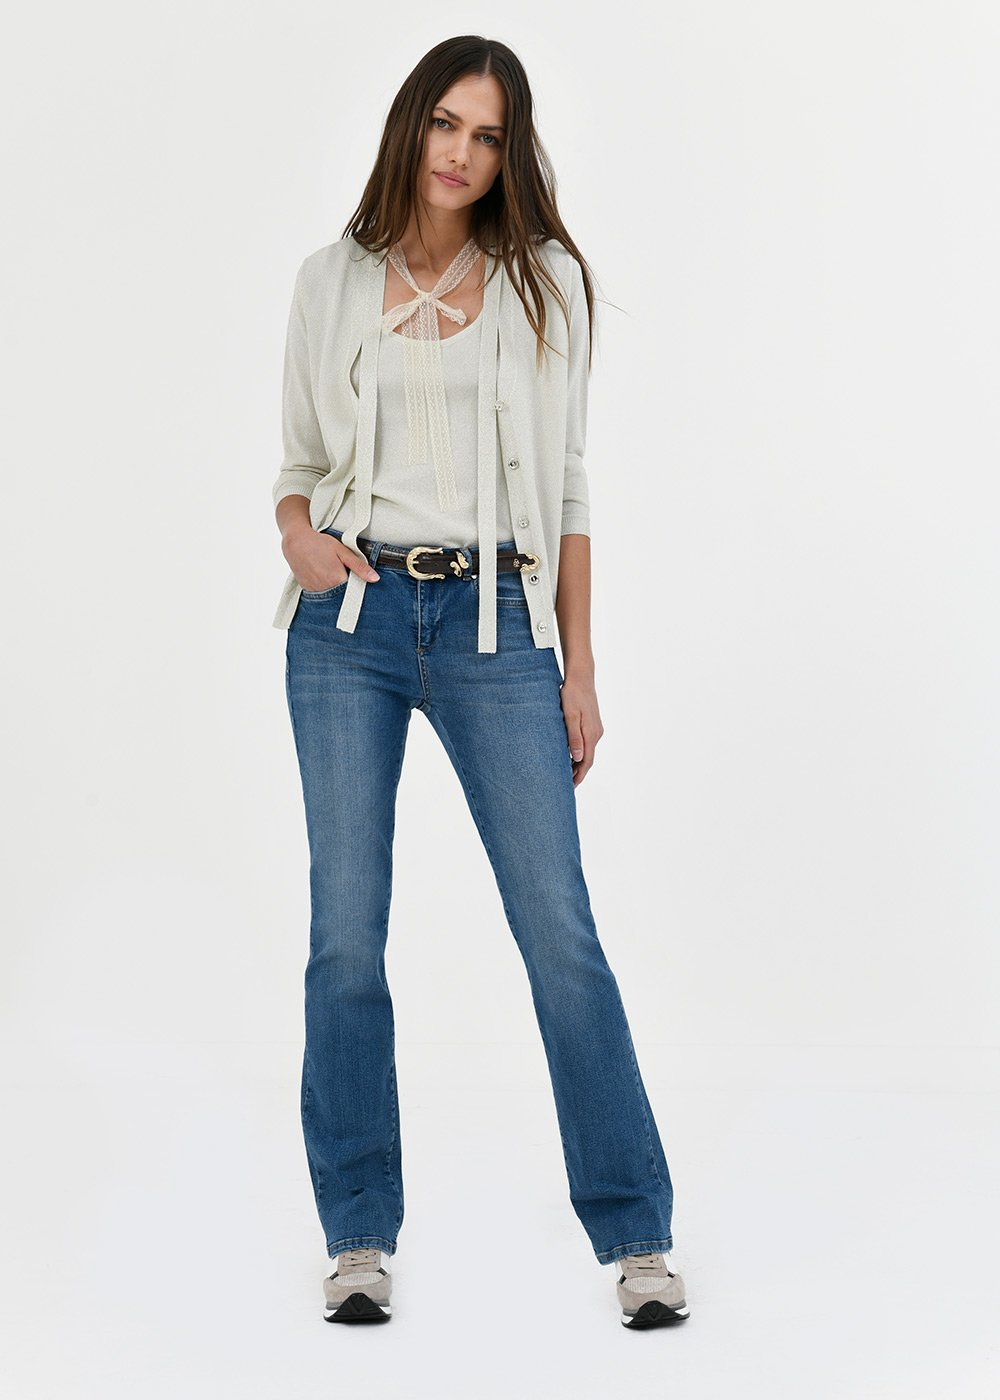 Daniel flared denims - Denim - Woman